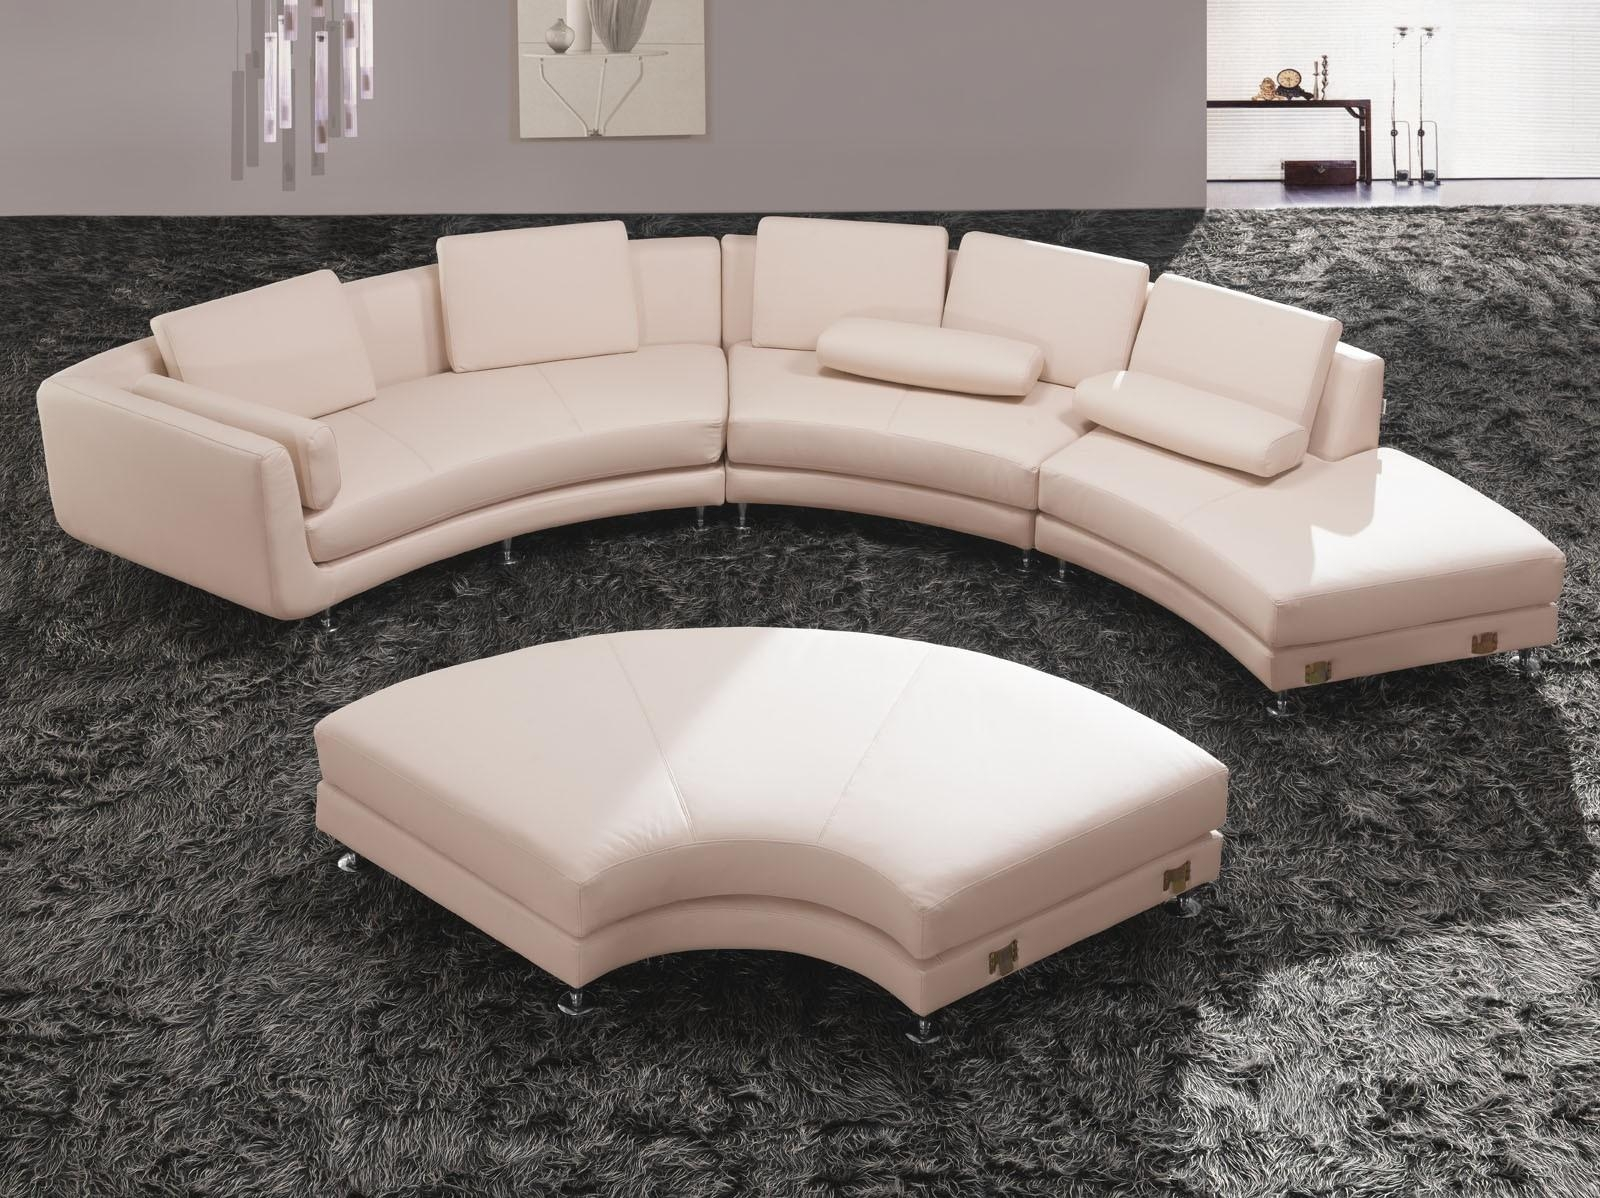 Sofas Center : Round Sofas Sectionals Images Of Photo Albums Within Round Sofas (View 9 of 20)